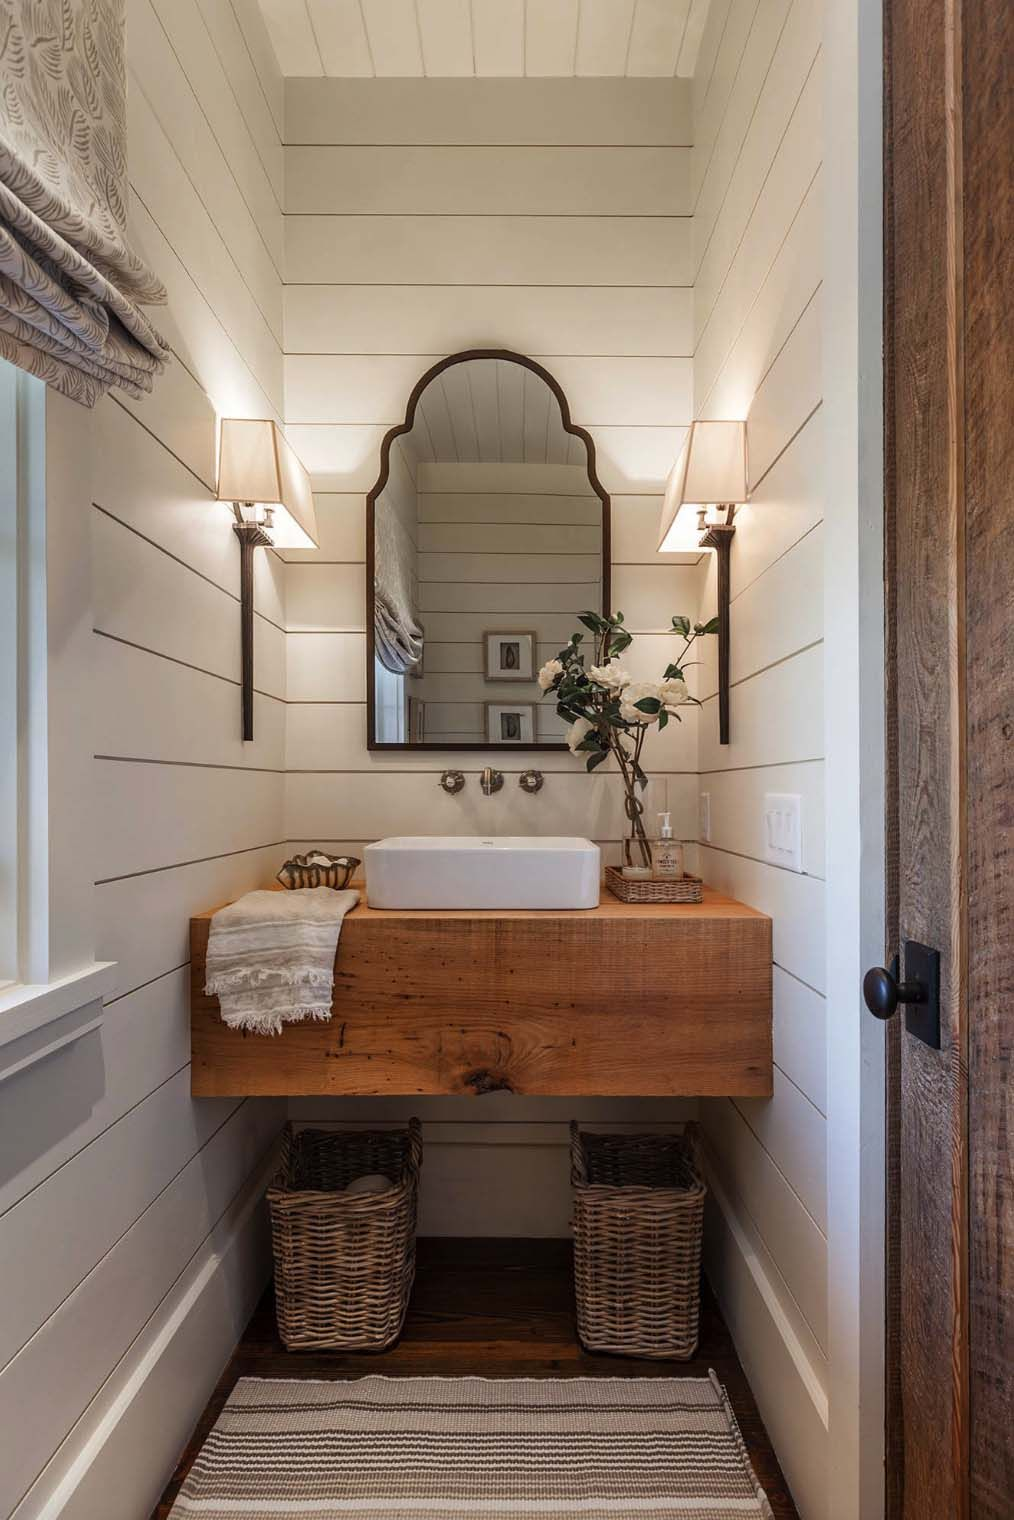 21 gorgeous farmhouse style bathrooms you will love | farmhouse